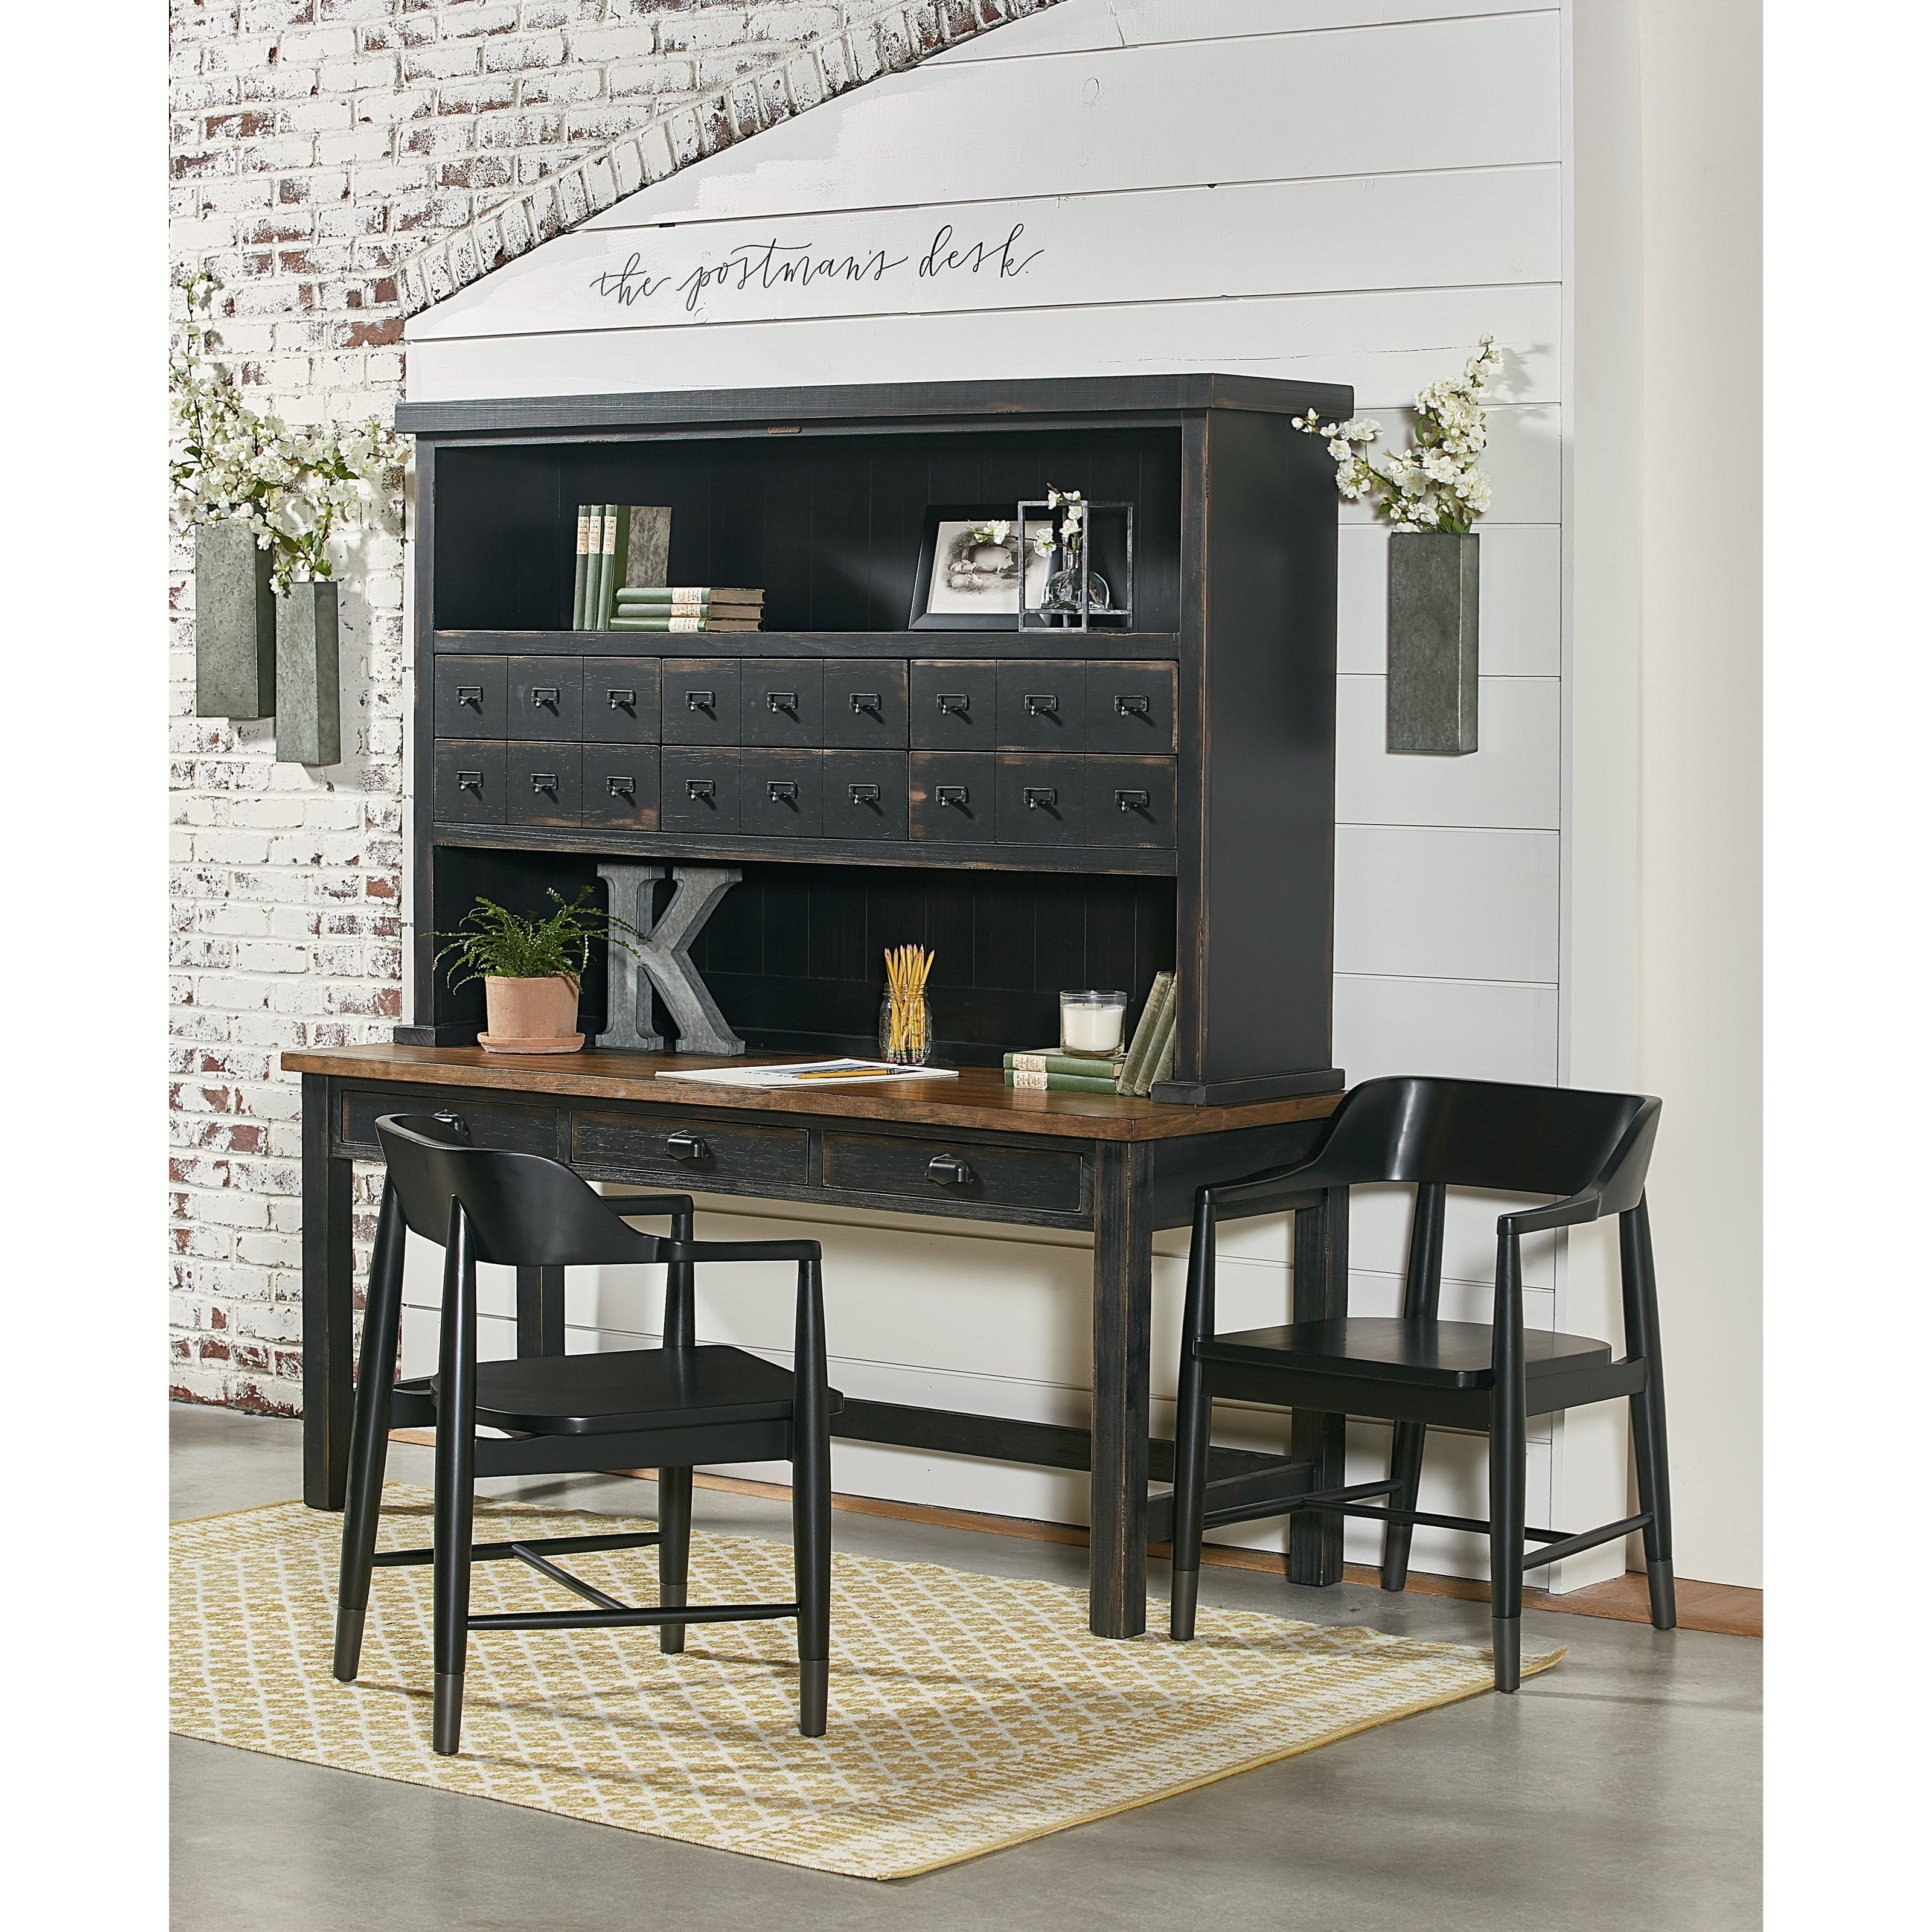 Magnolia Home By Joanna Gaines Industrial Postman S Desk